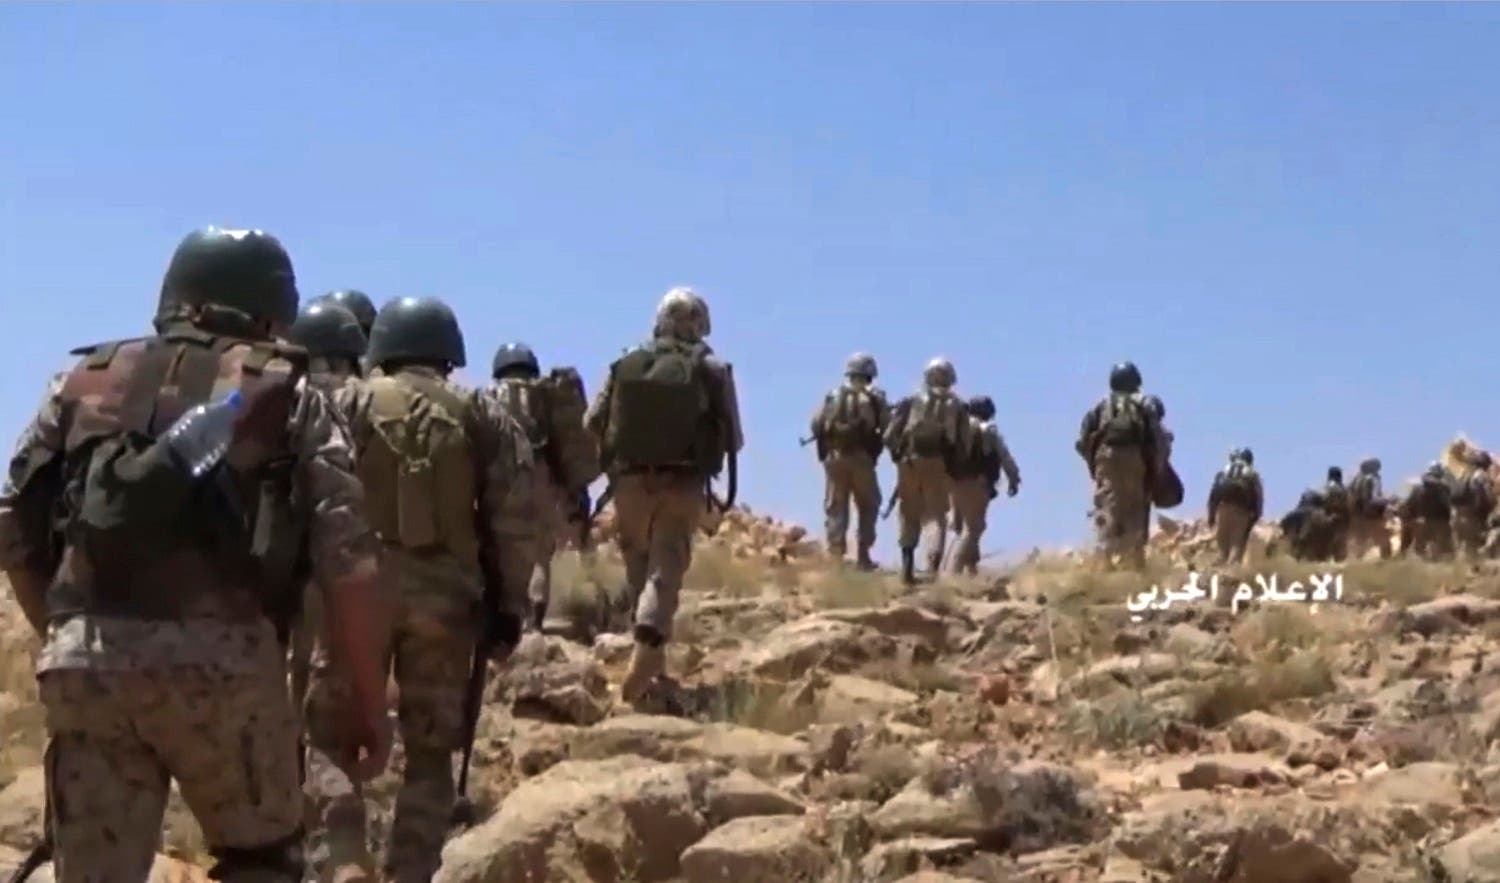 This frame grab from video released on July 22, 2017 shows Hezbollah fighters advancing up a hill during clashes with al-Qaeda-linked militants in an area on the Lebanon-Syria border. (AP)